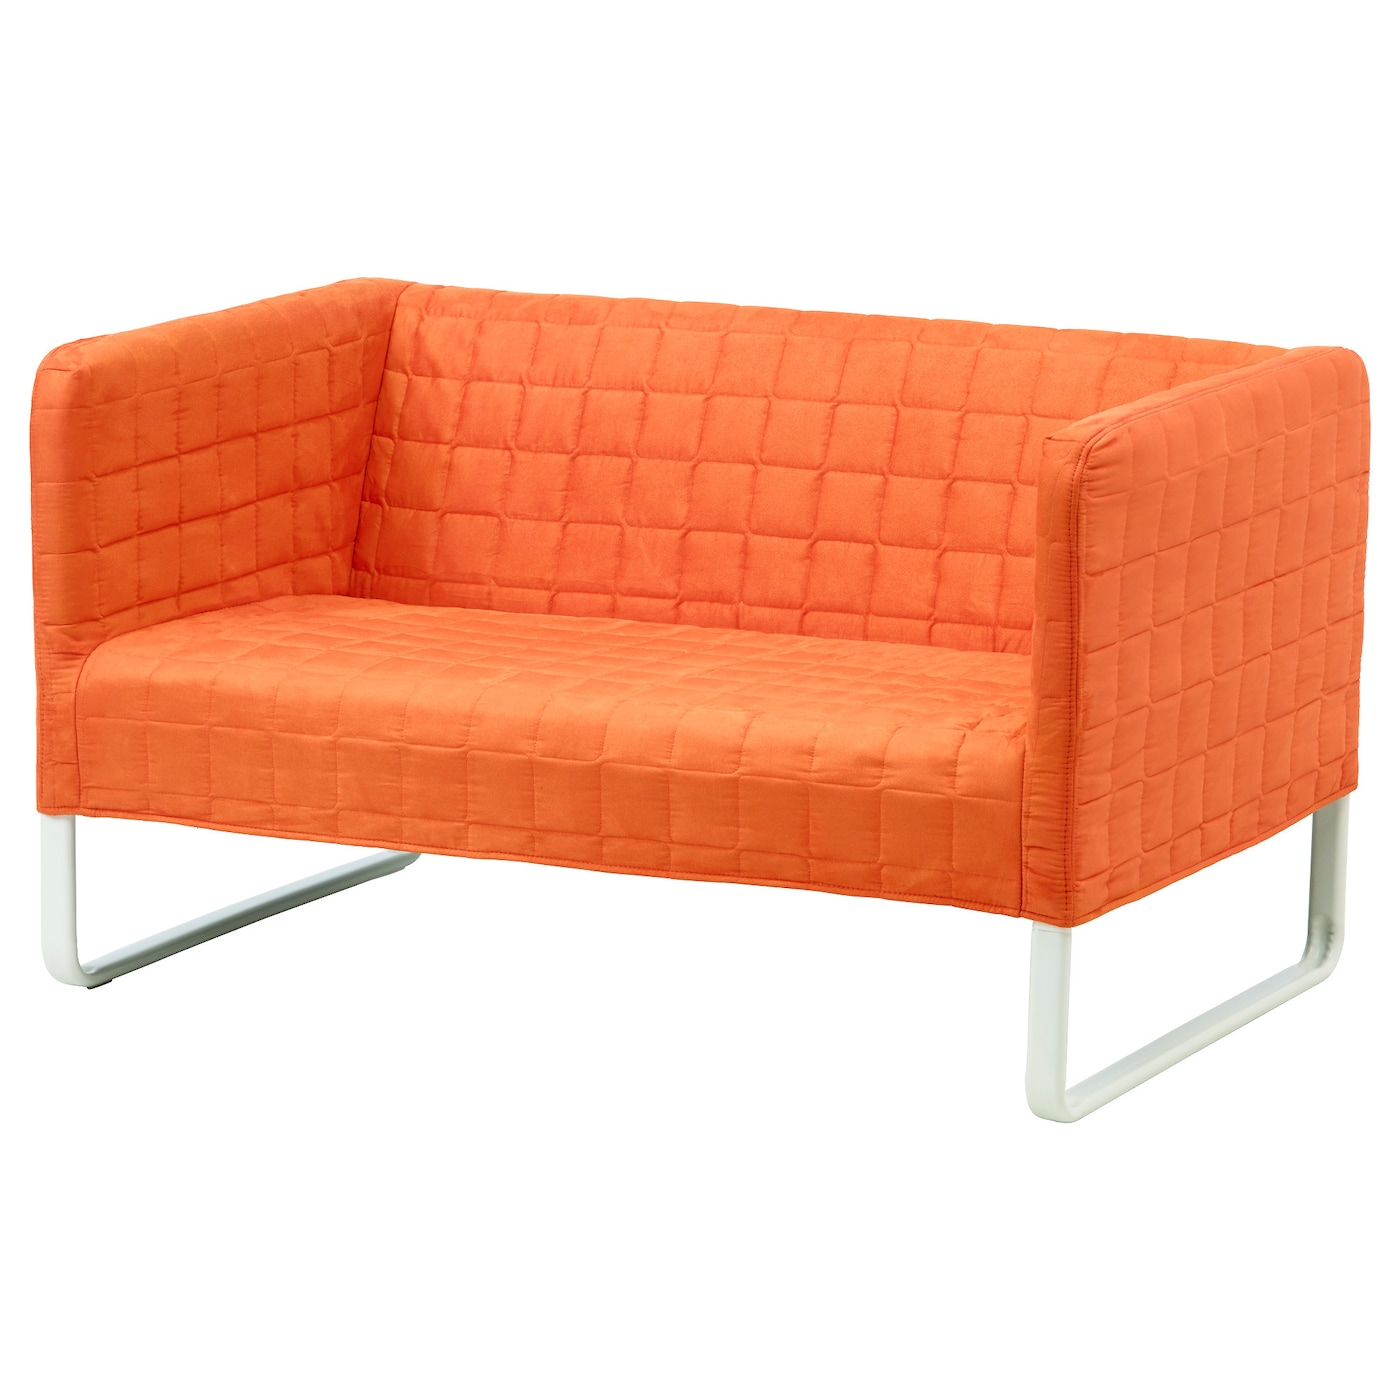 KNOPPARP 2 Seat Sofa Orange